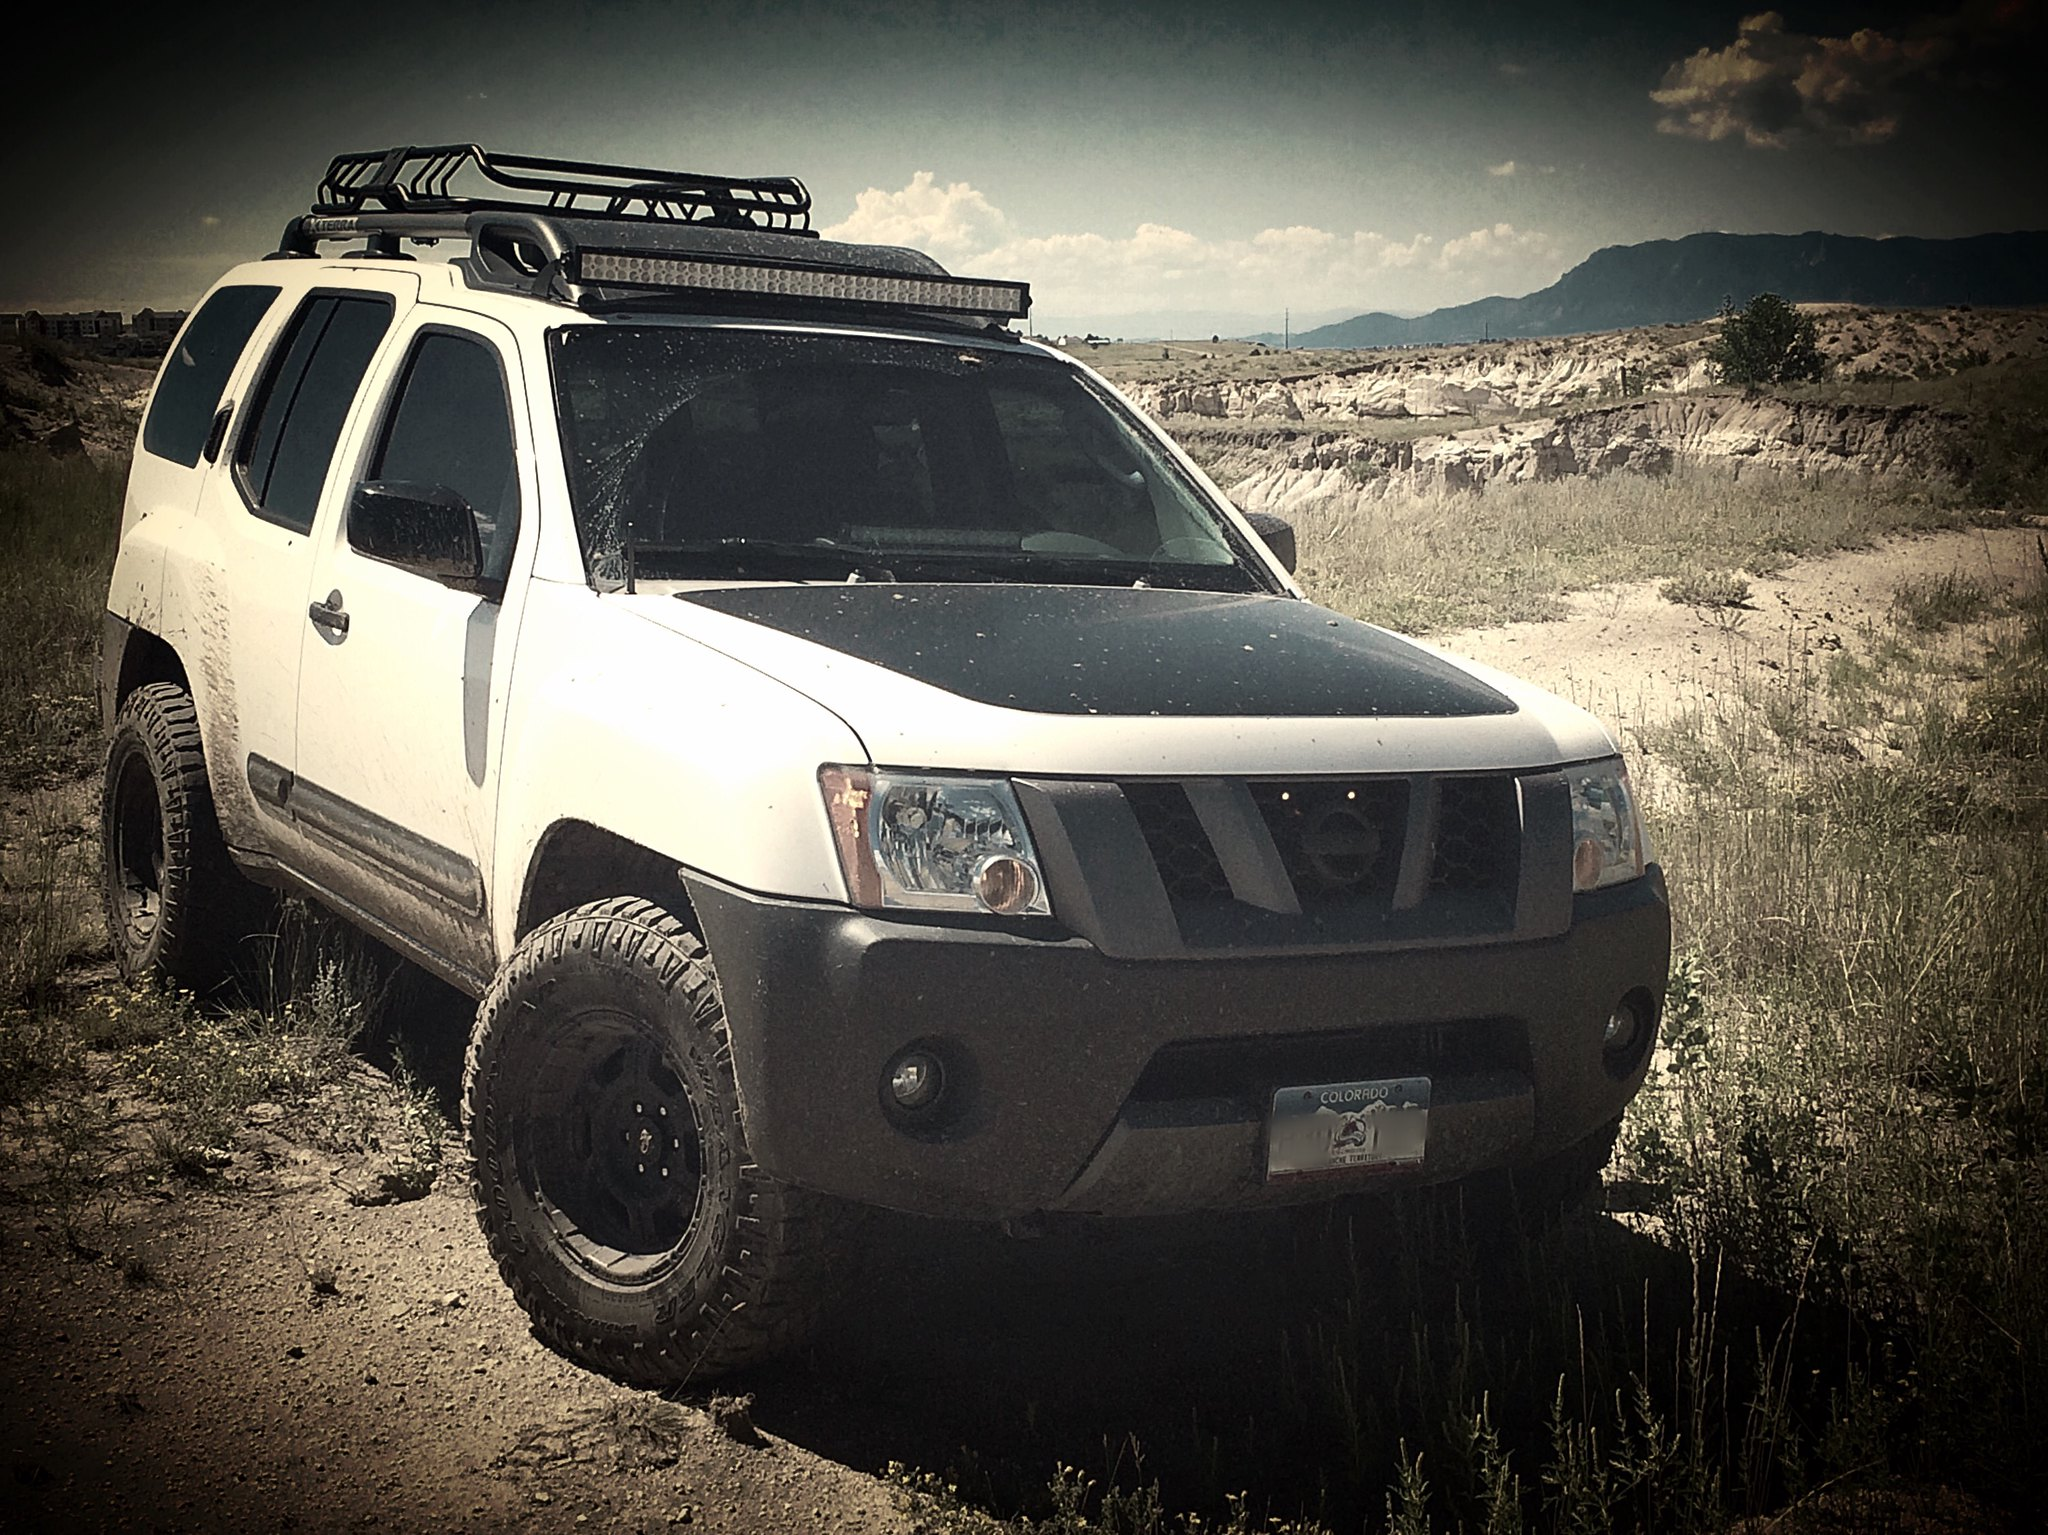 Nissan Colorado Springs >> Spdu4ia's Avalanche Build (Amber LED Light Bar) - Page 13 - Second Generation Nissan Xterra ...